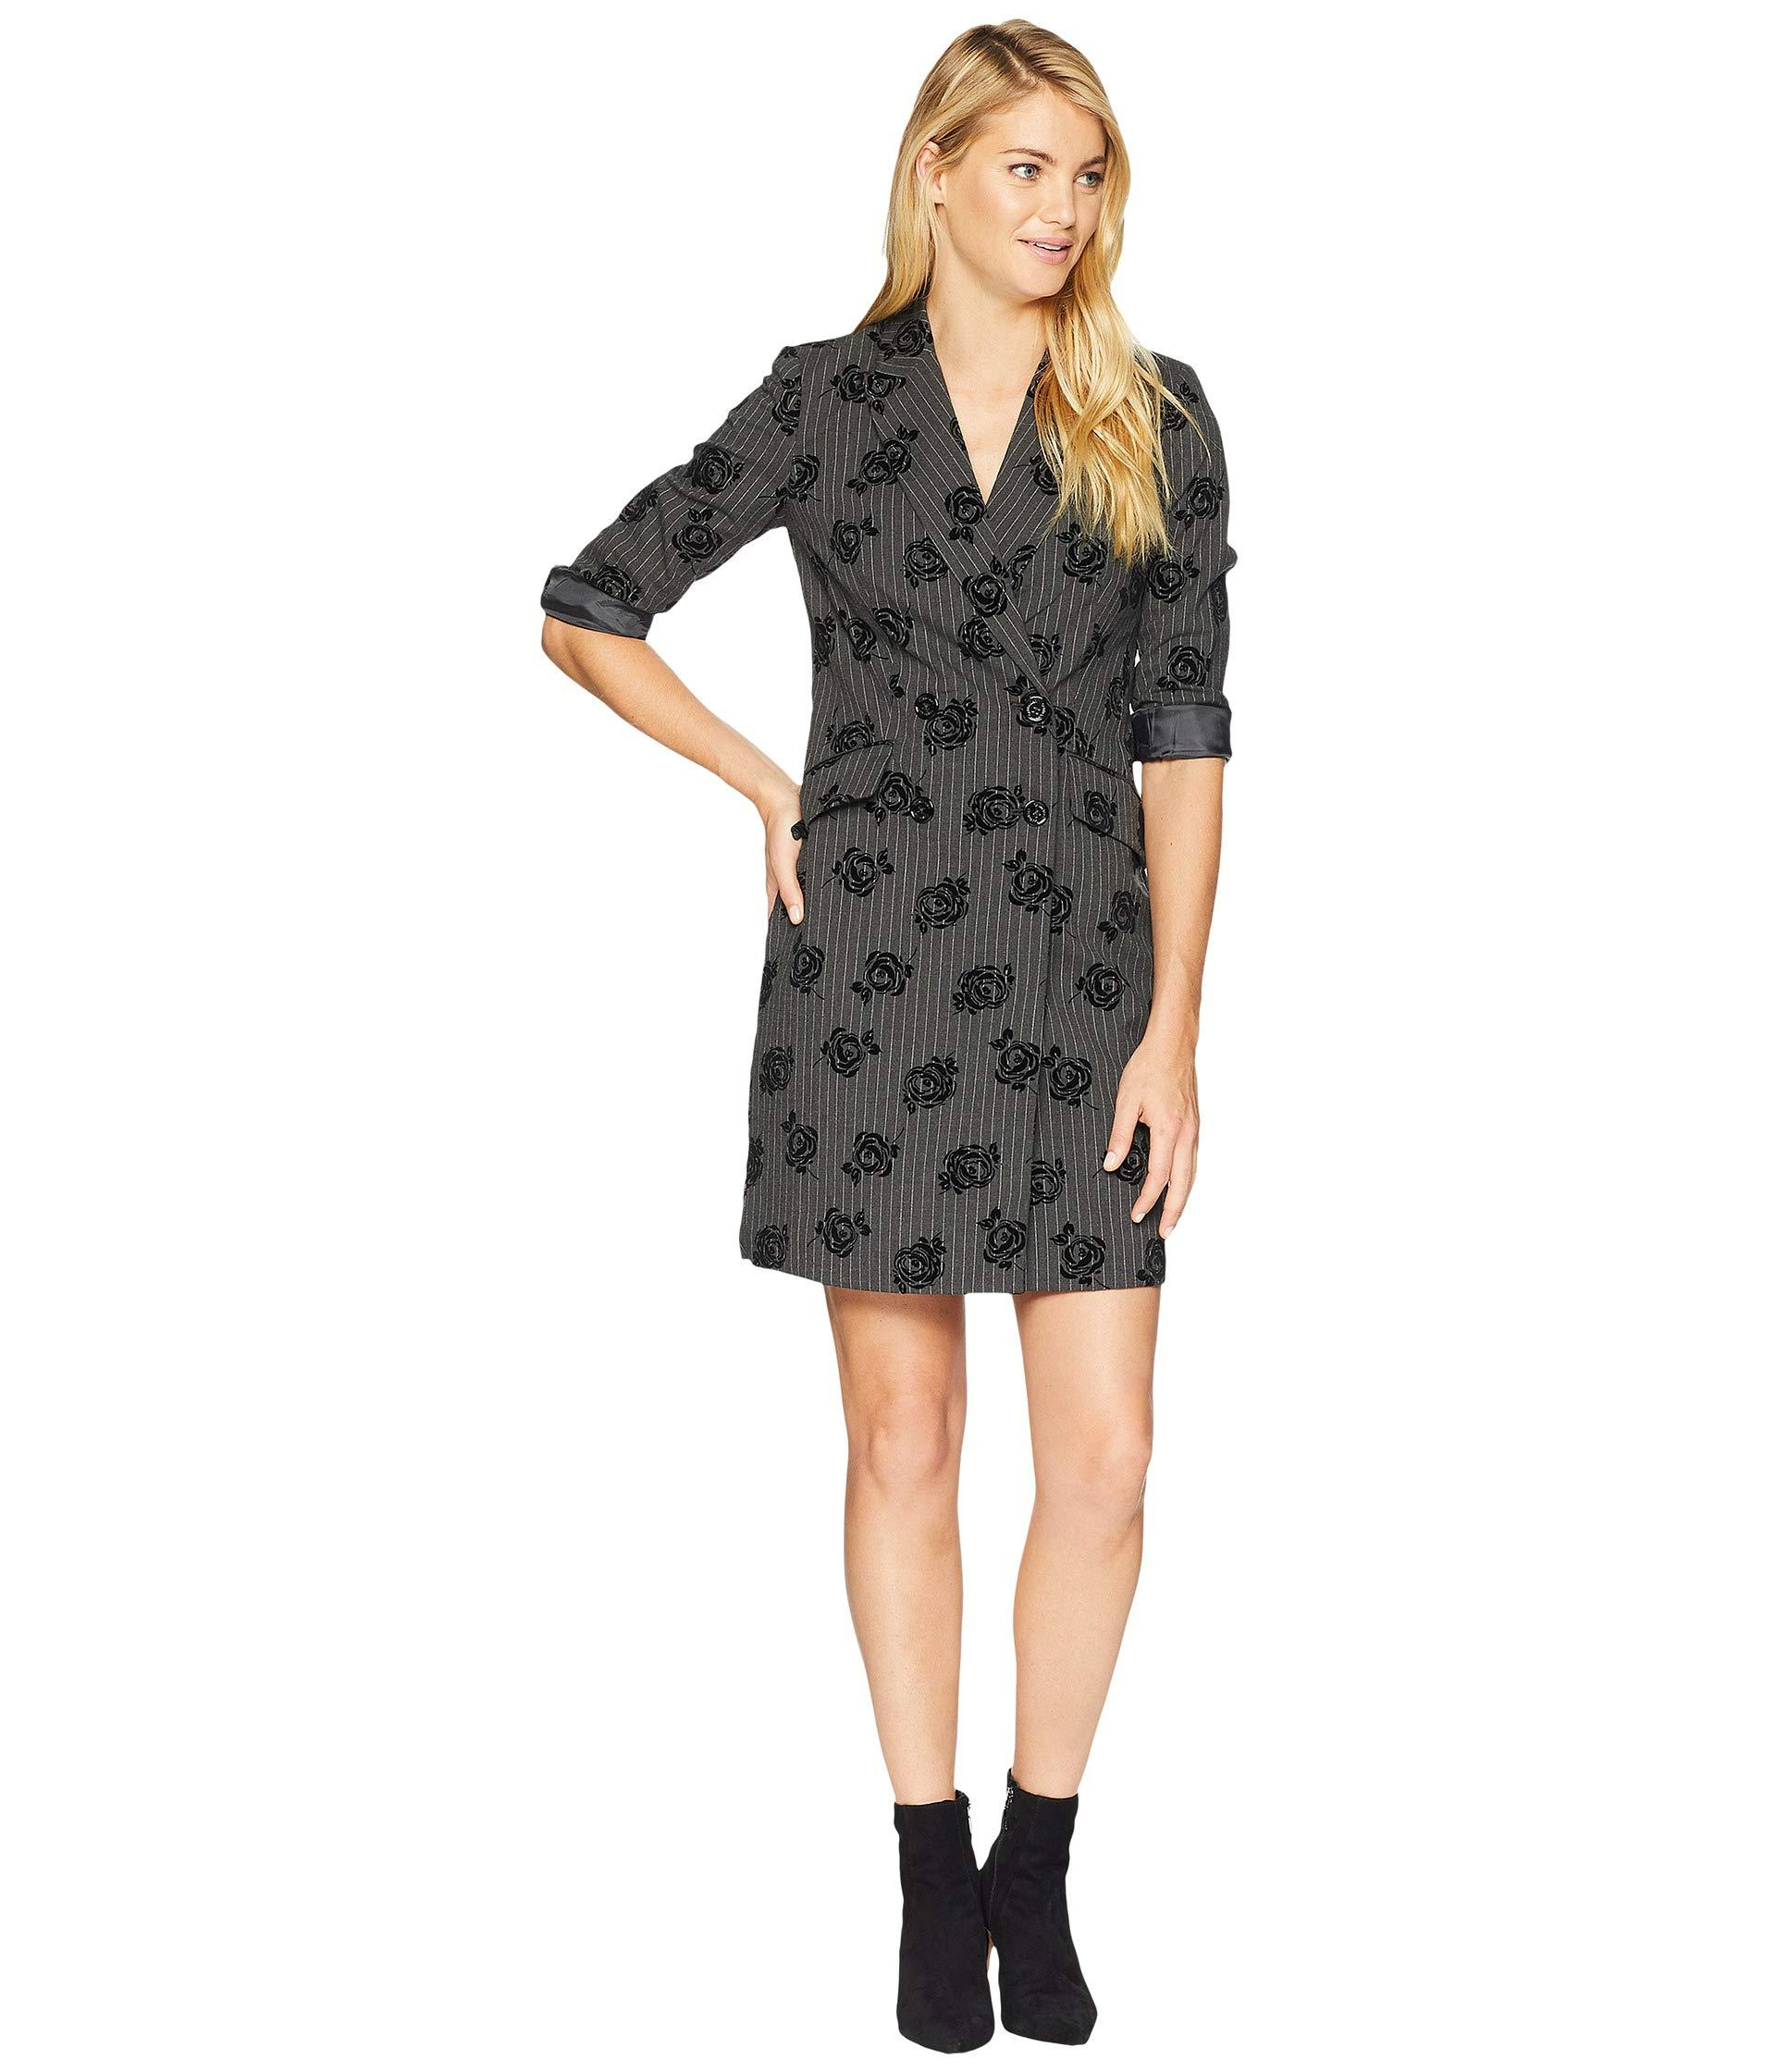 70c6083ee6b8 Lyst - Calvin Klein Embroidered Coat Dress in Black - Save 16%